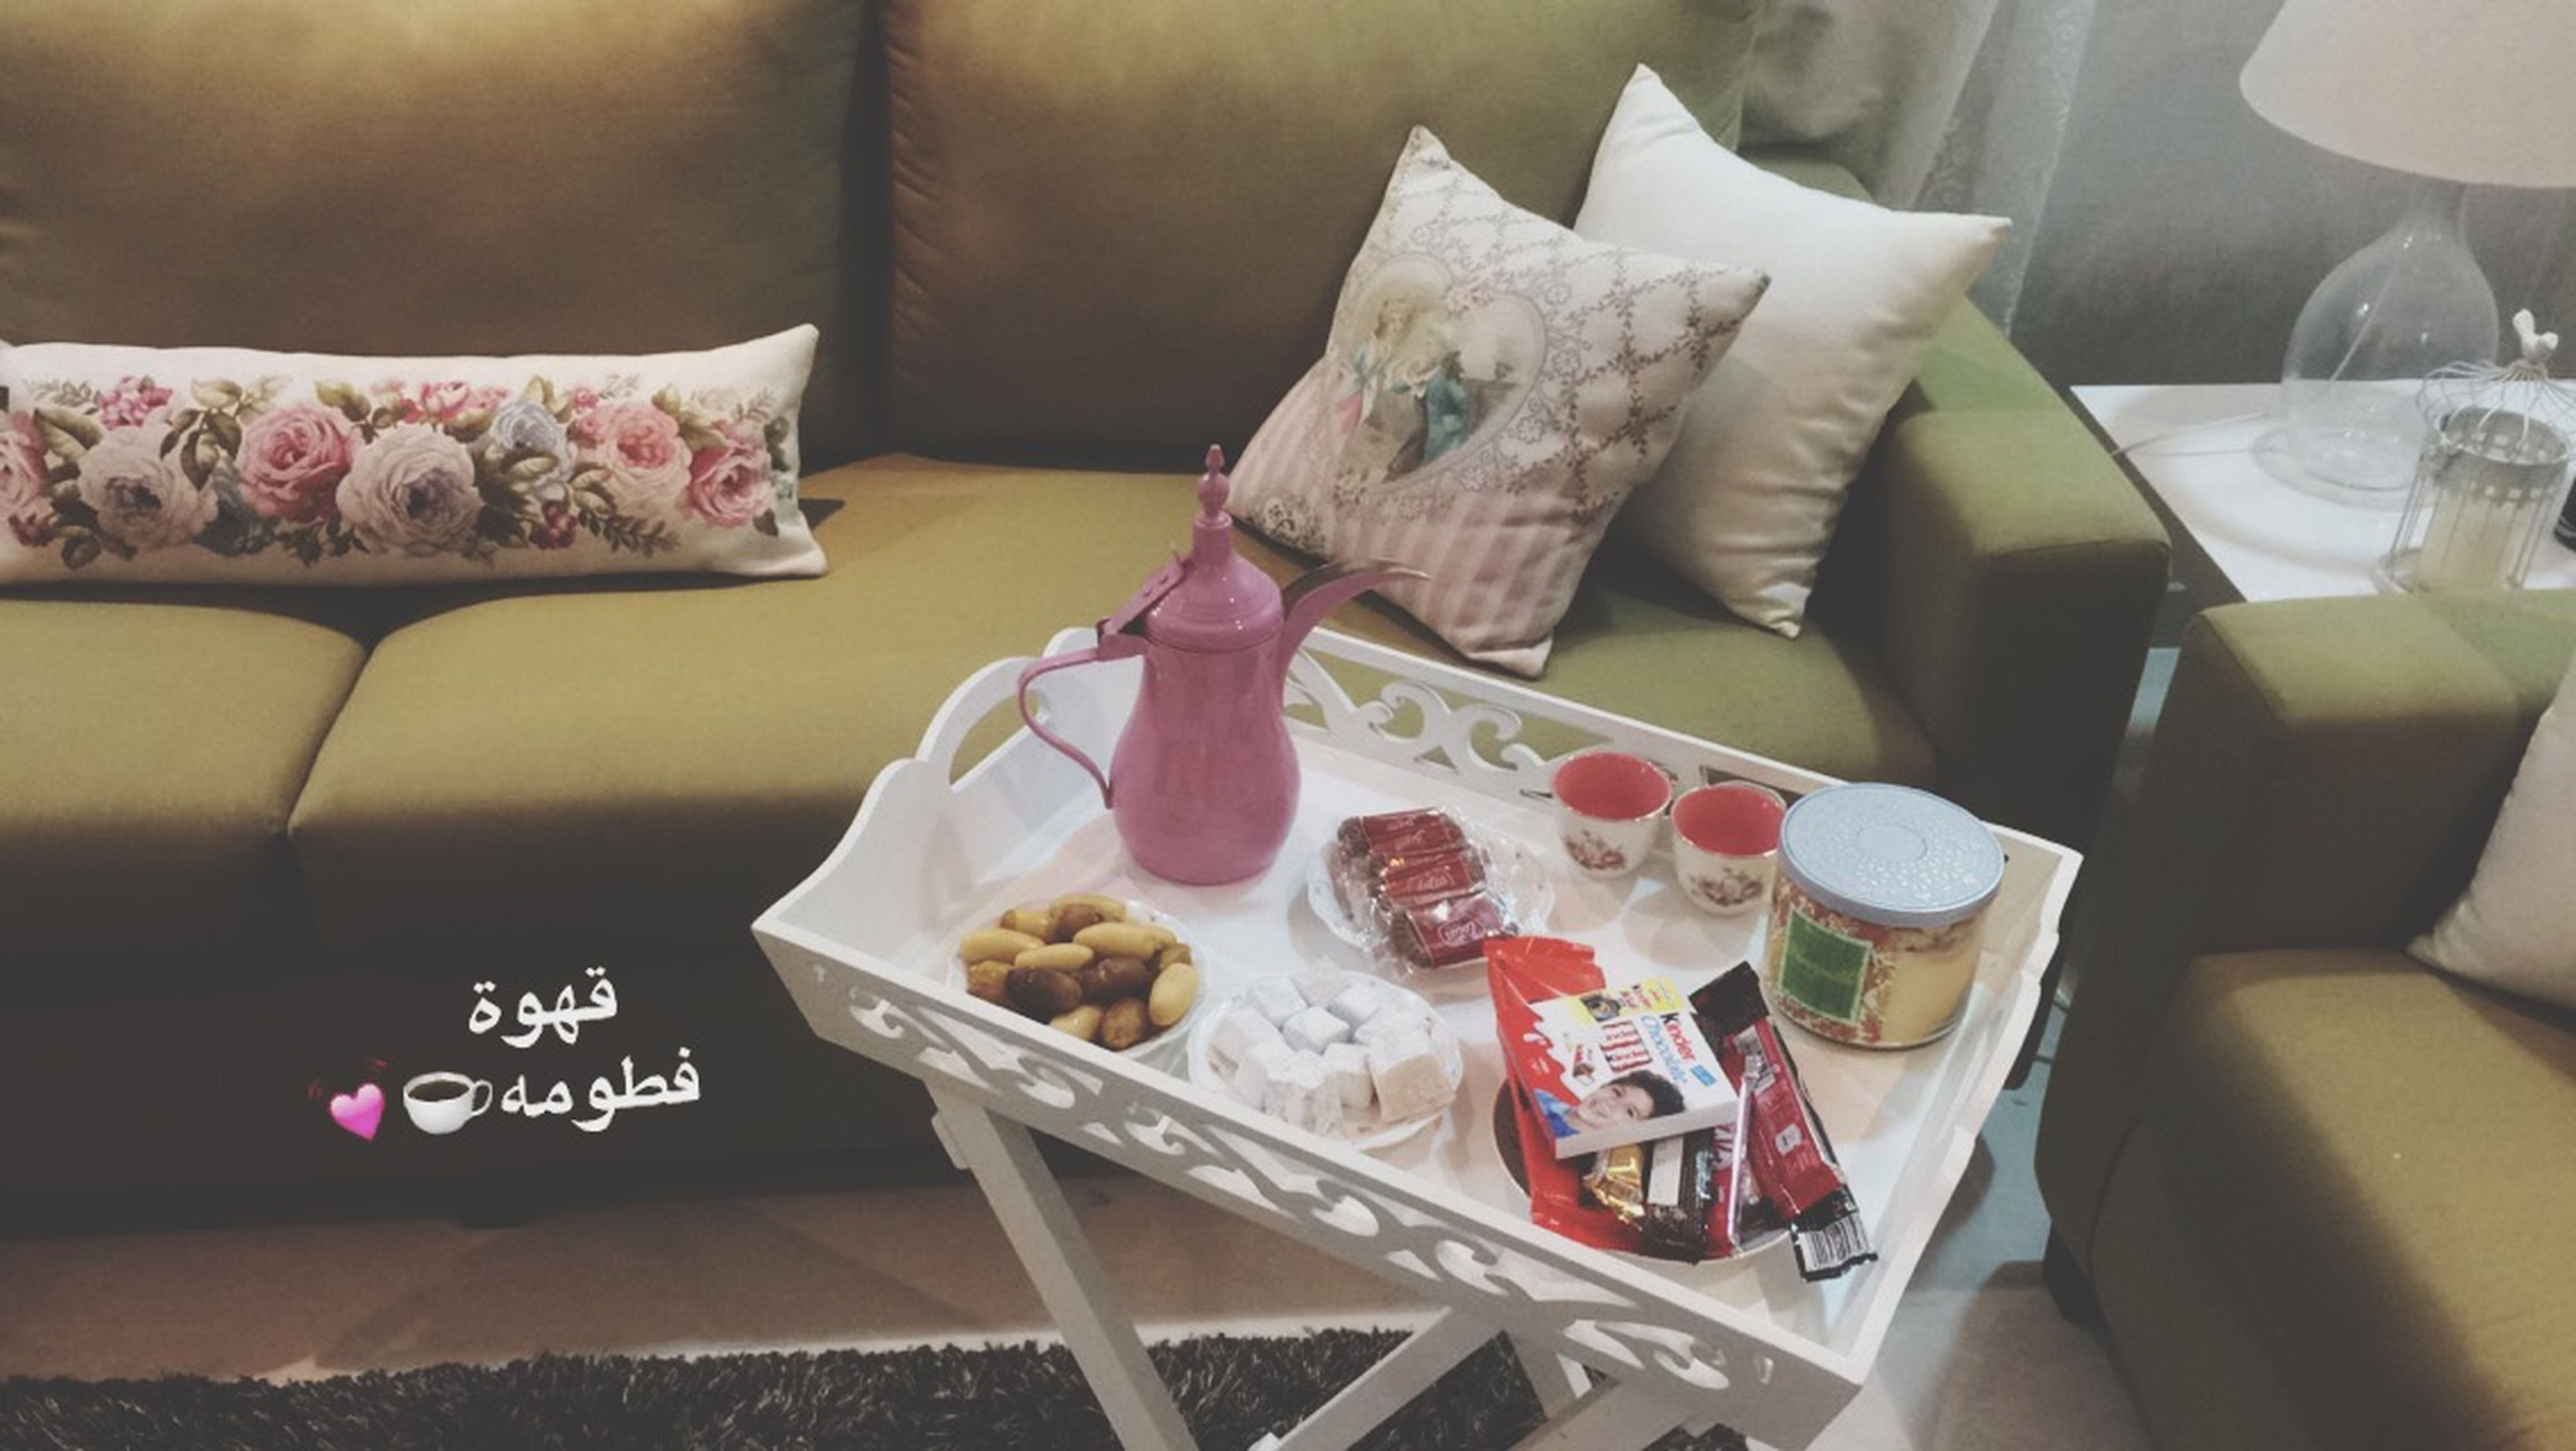 indoors, food and drink, food, table, still life, plate, freshness, sweet food, ready-to-eat, dessert, high angle view, indulgence, unhealthy eating, no people, close-up, home interior, variation, cake, day, temptation